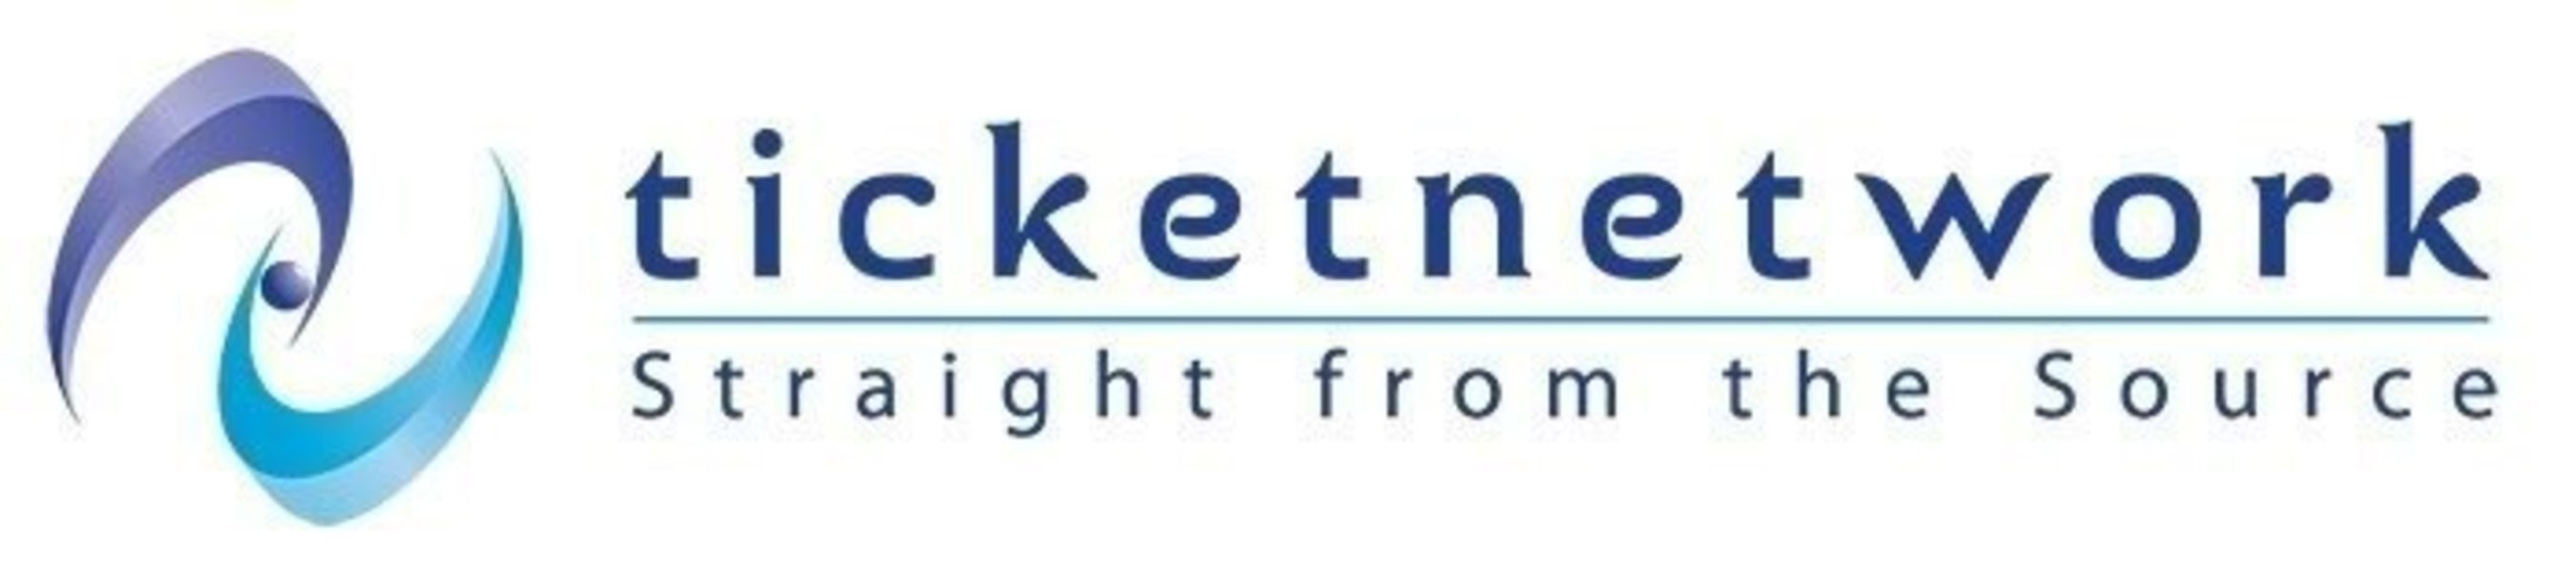 TicketNetwork is a secure, online marketplace where buyers and sellers of tickets can safely transact. They are  ...